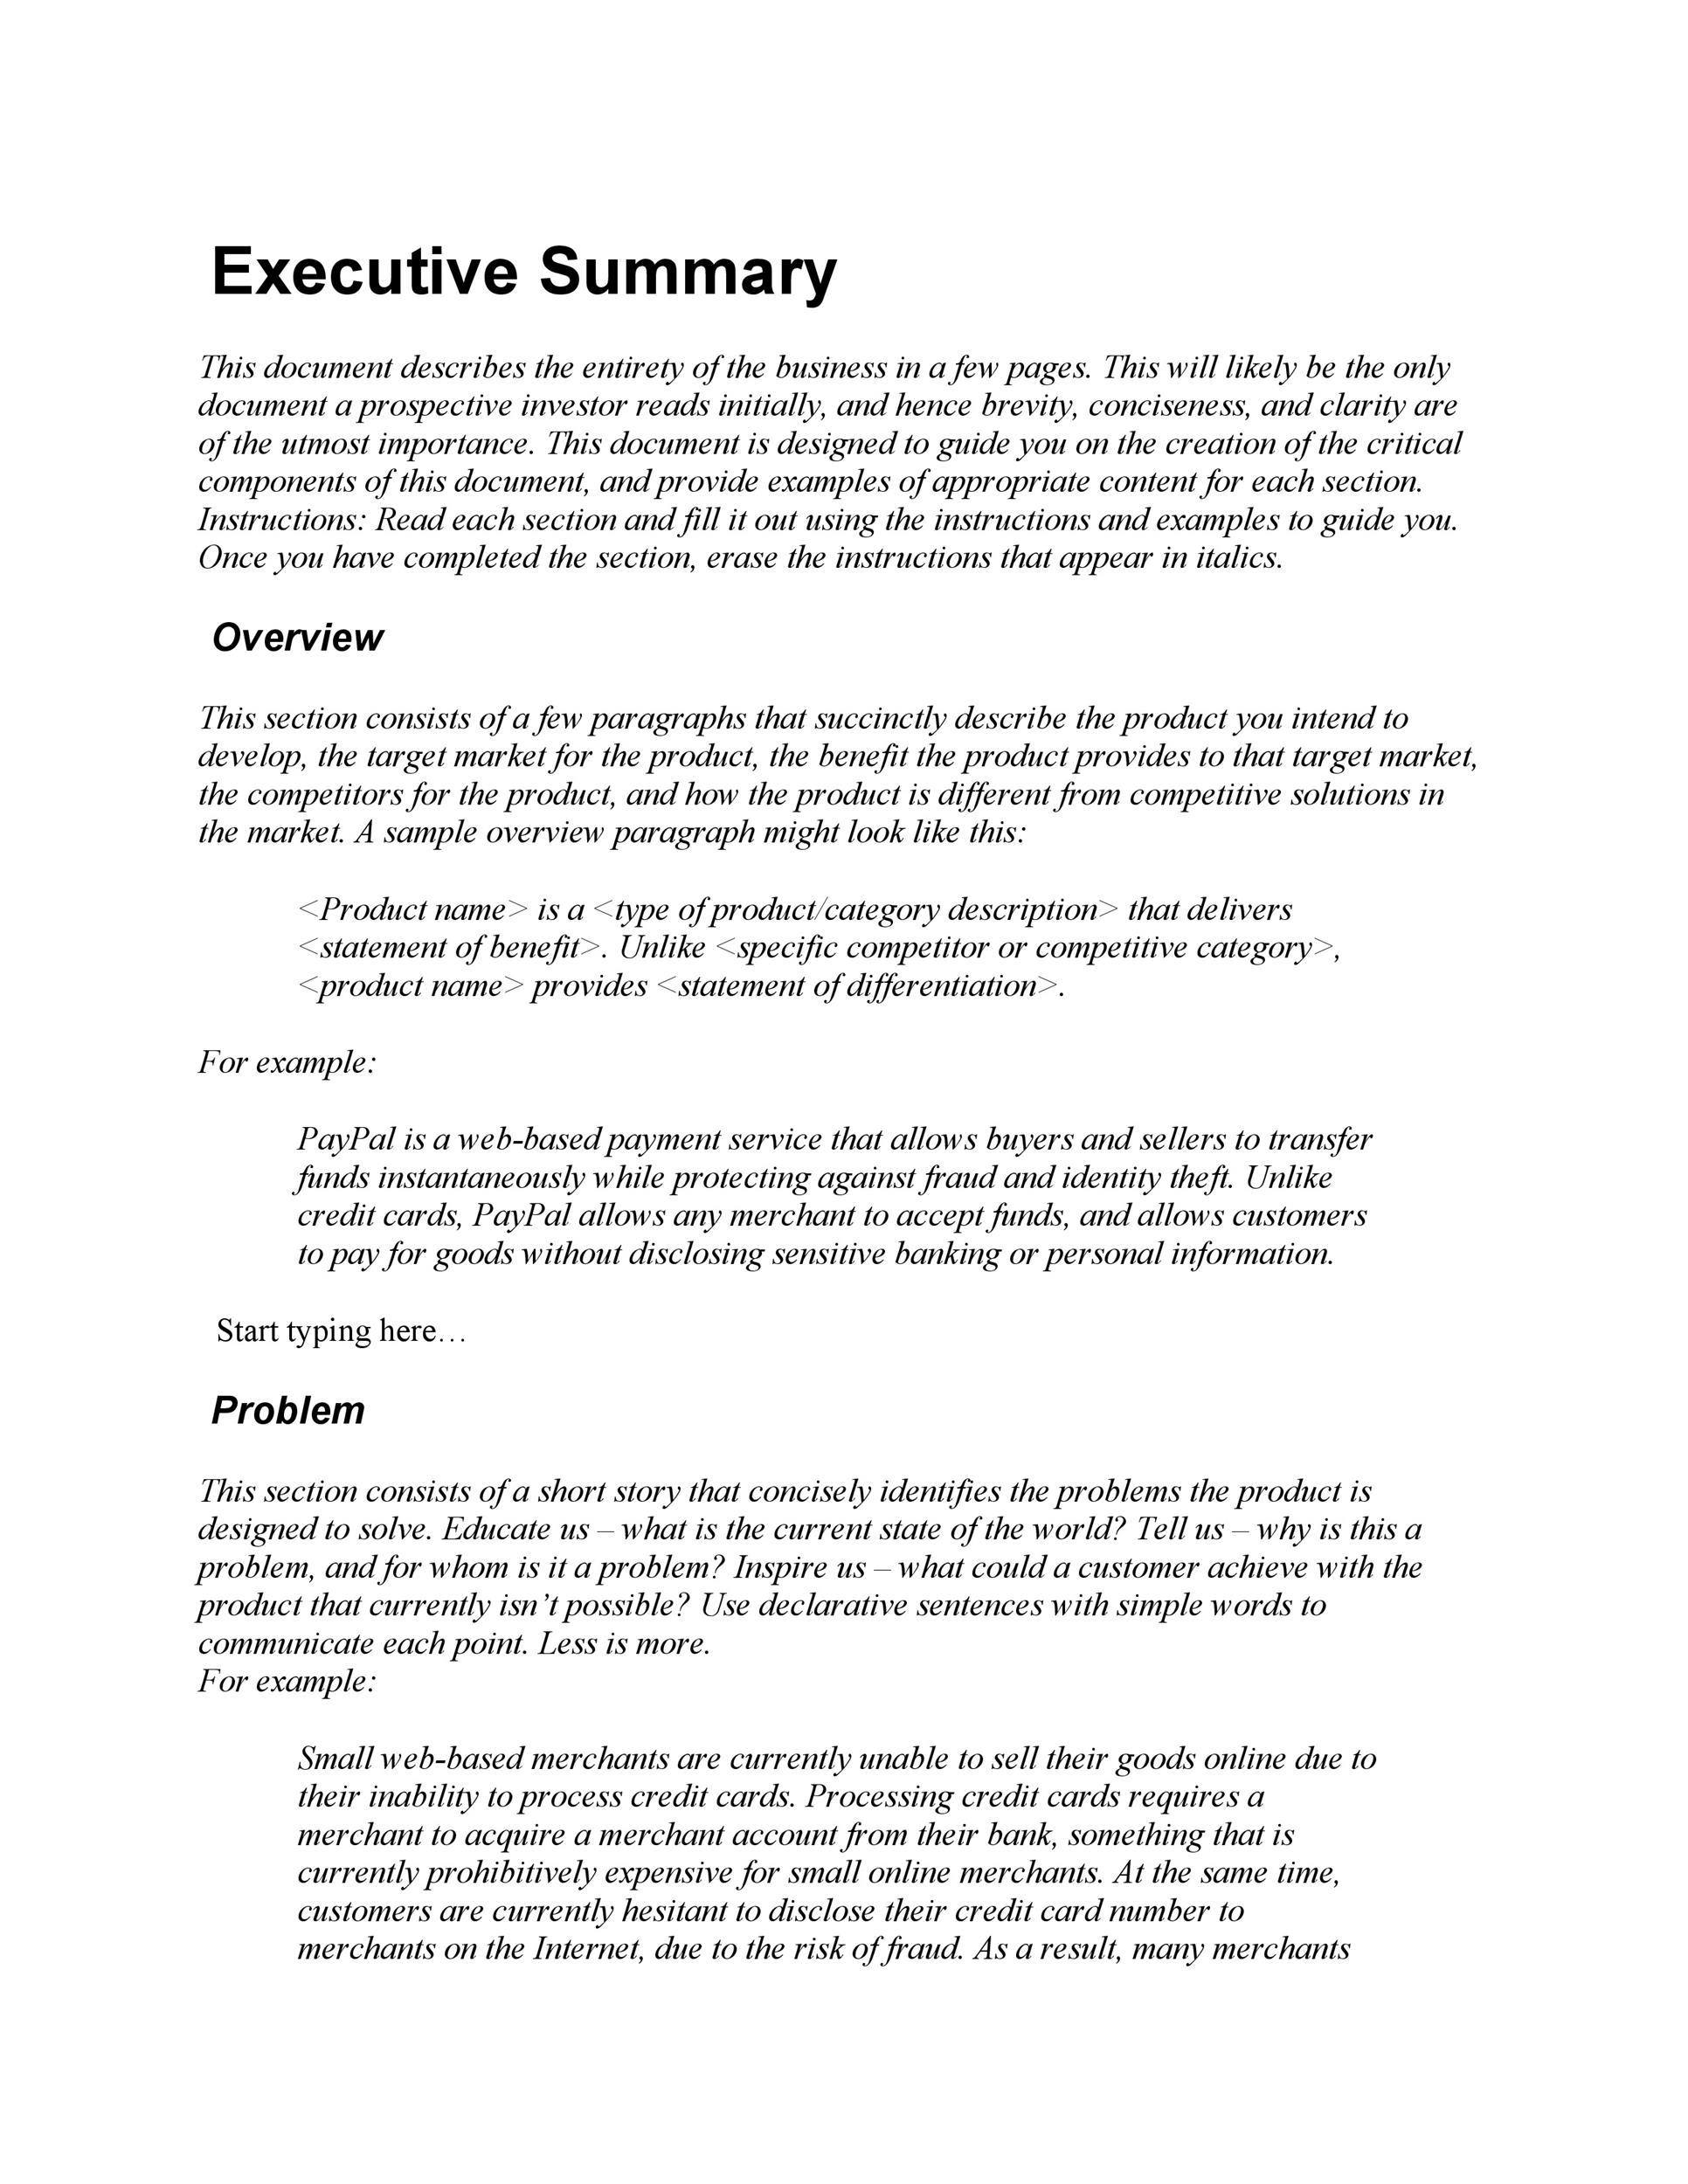 30+ Perfect Executive Summary Examples  Templates ᐅ Template Lab